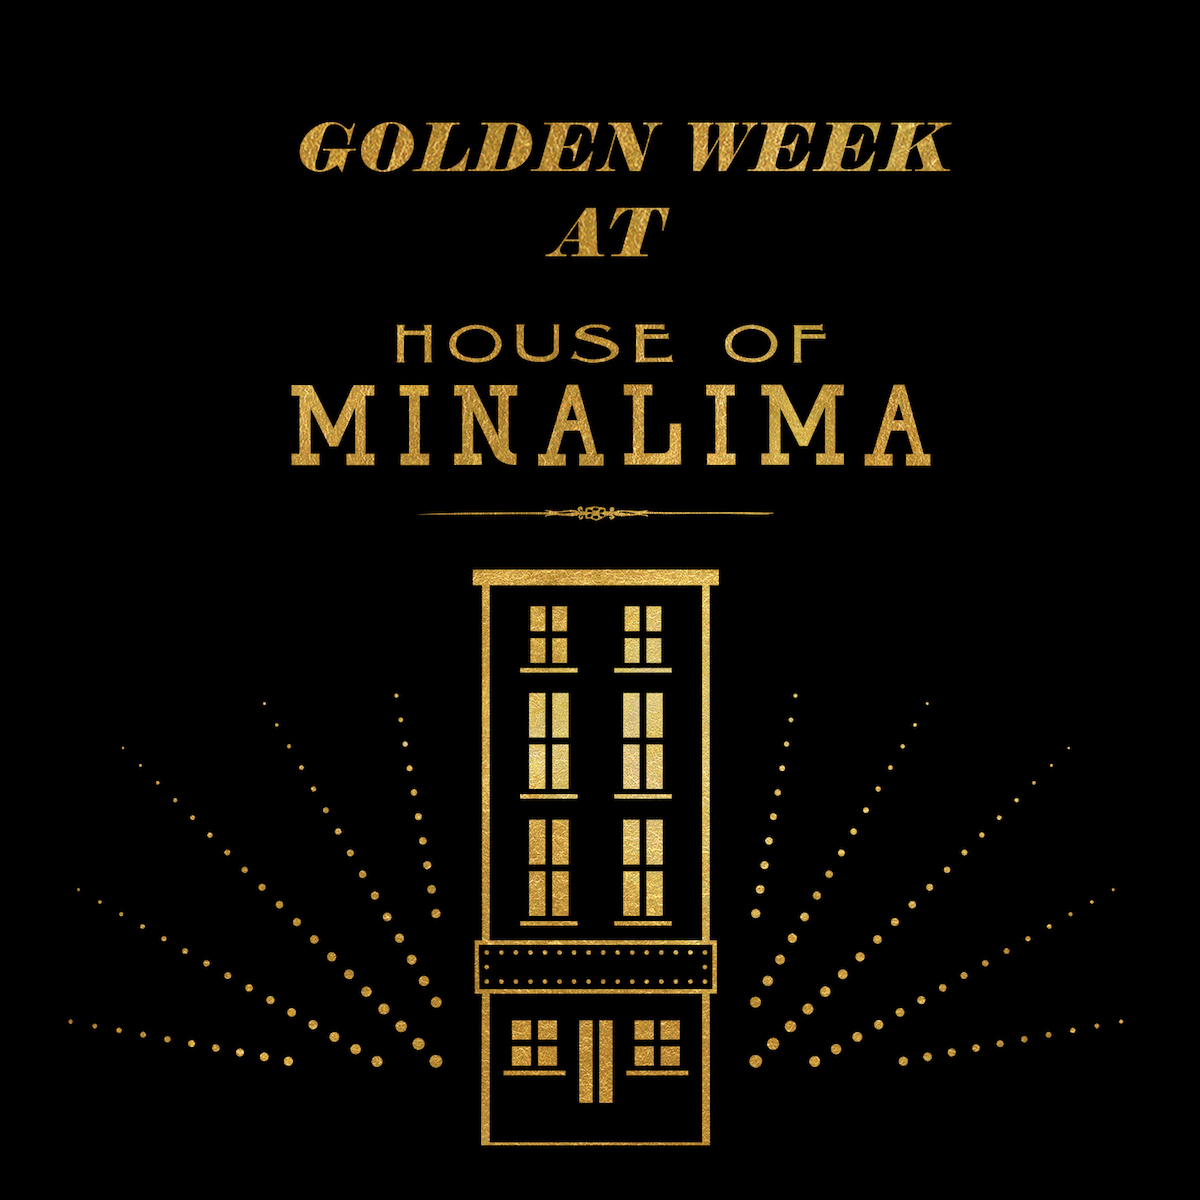 House of MinaLima will be shimmering from top to bottom this week, in celebration of its second birthday!